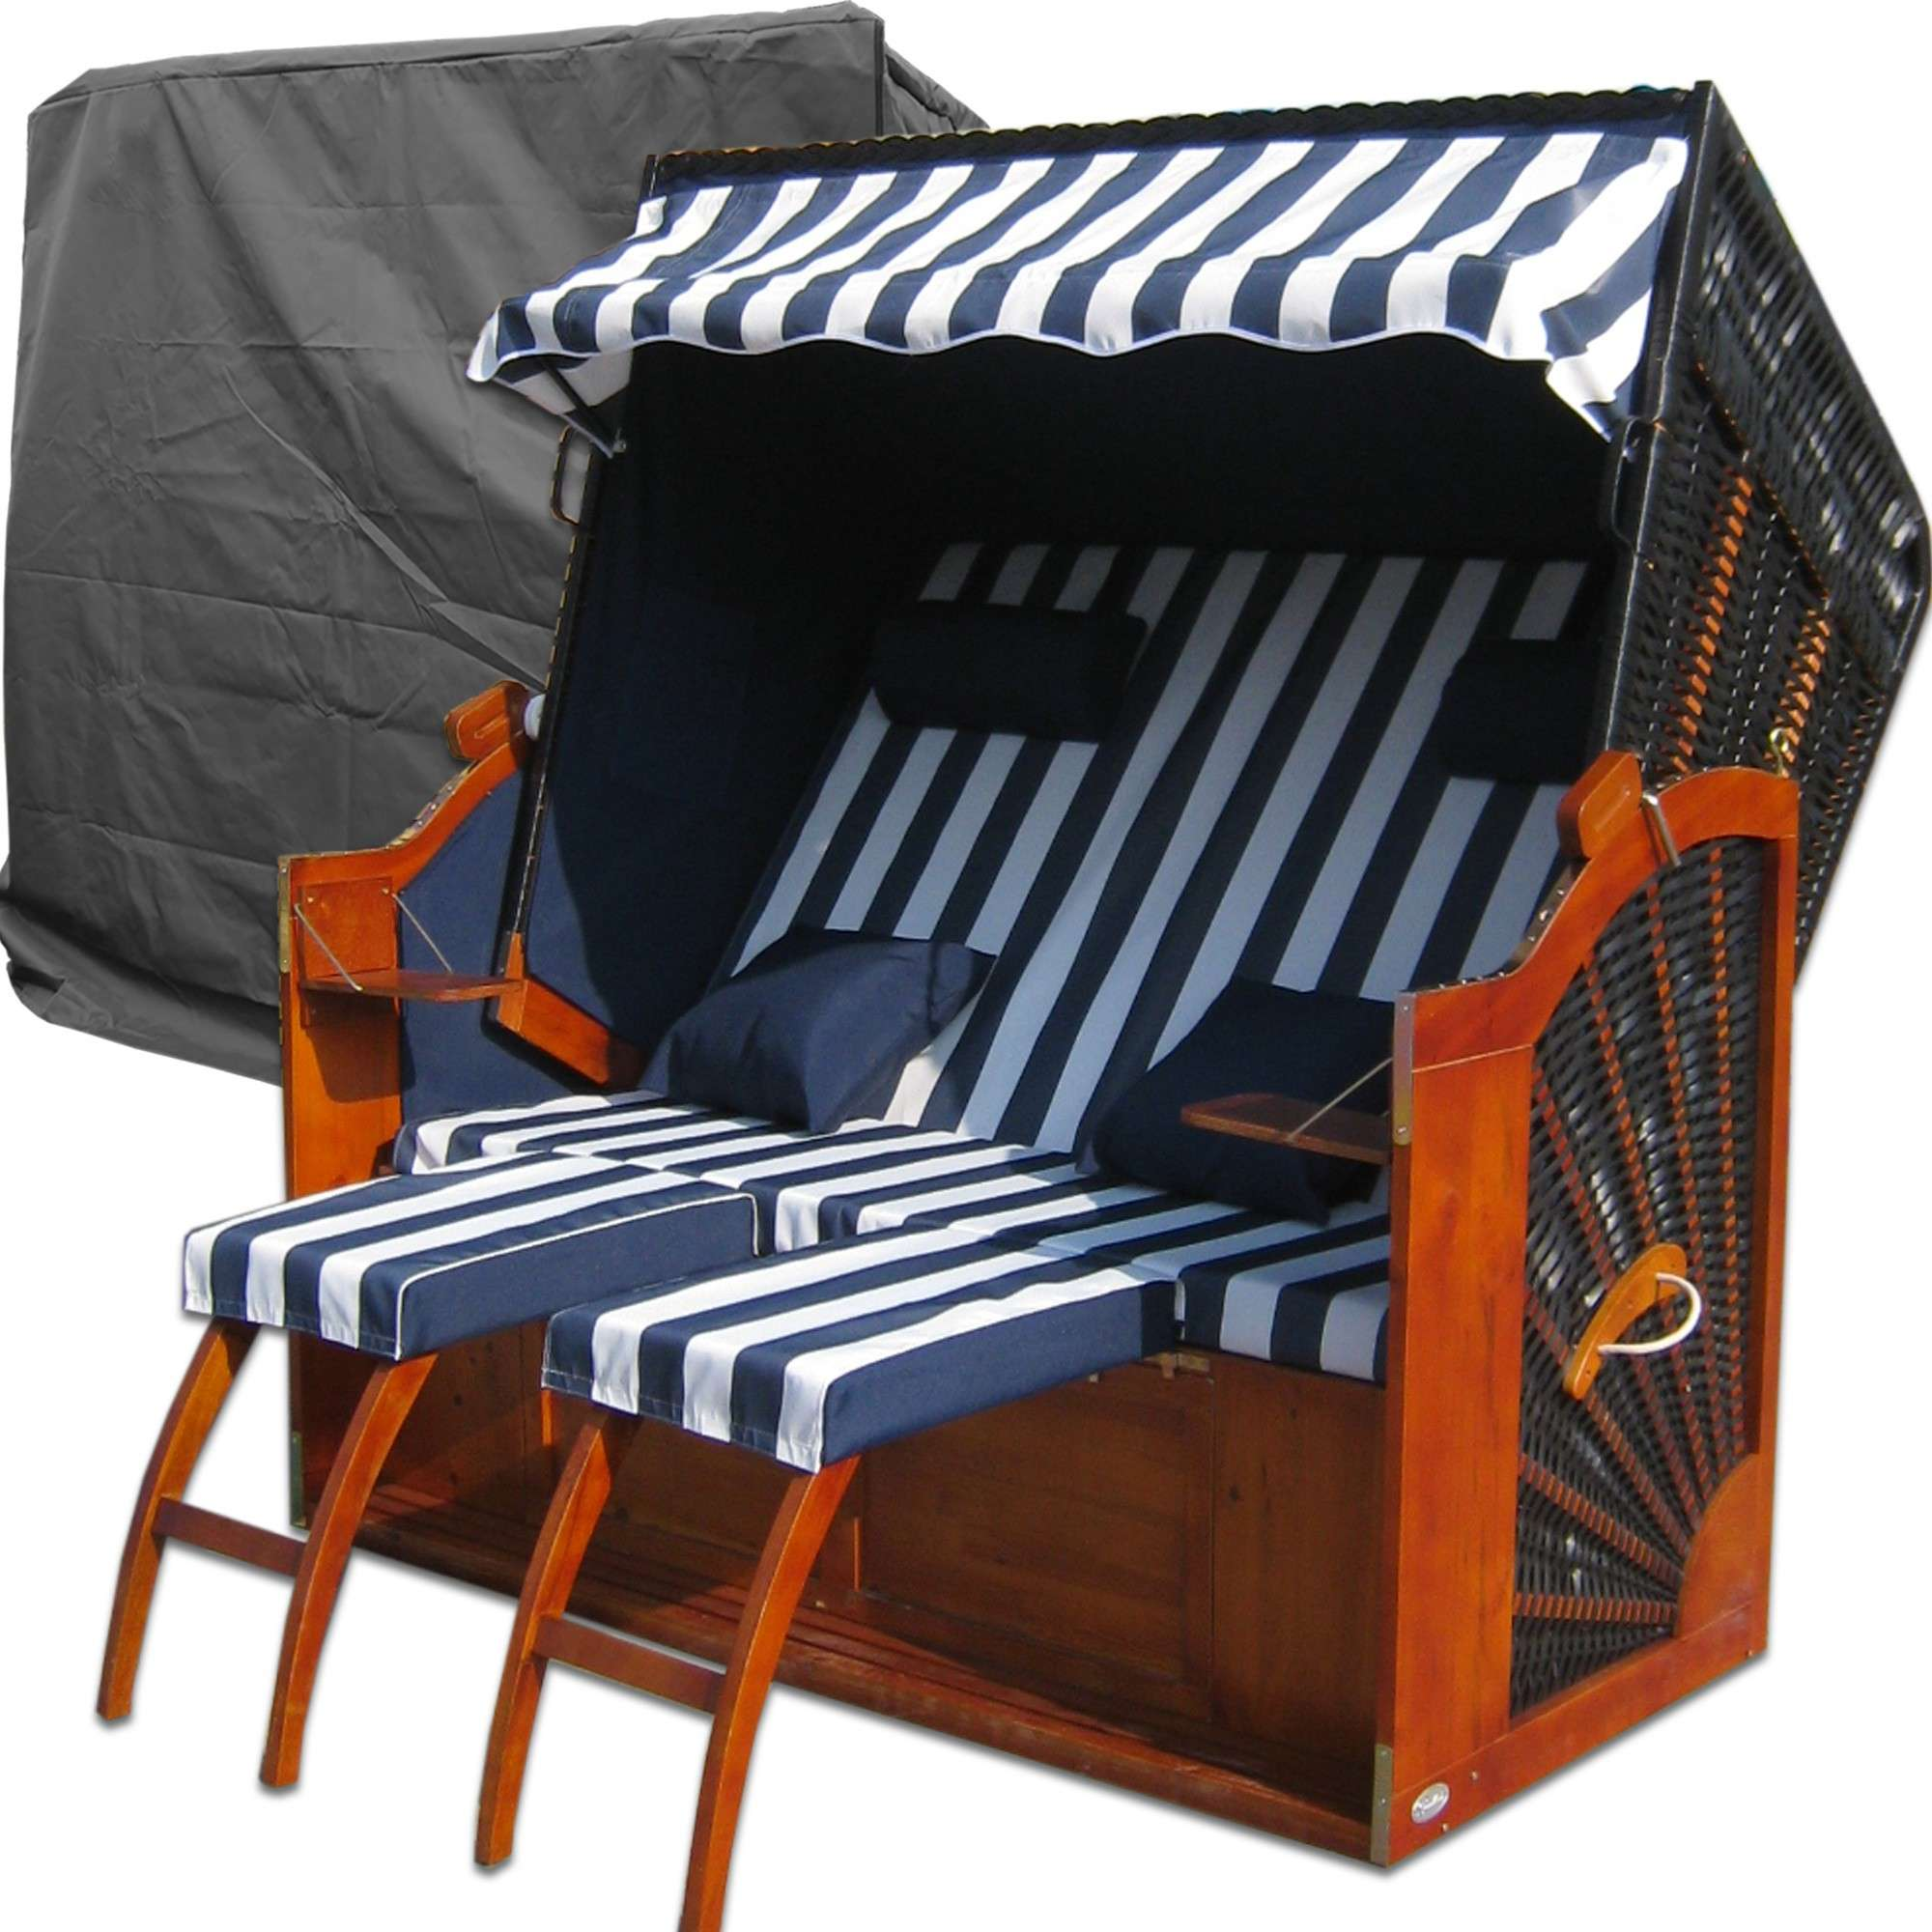 xinro strandkorb xxl rugbyclubeemland. Black Bedroom Furniture Sets. Home Design Ideas